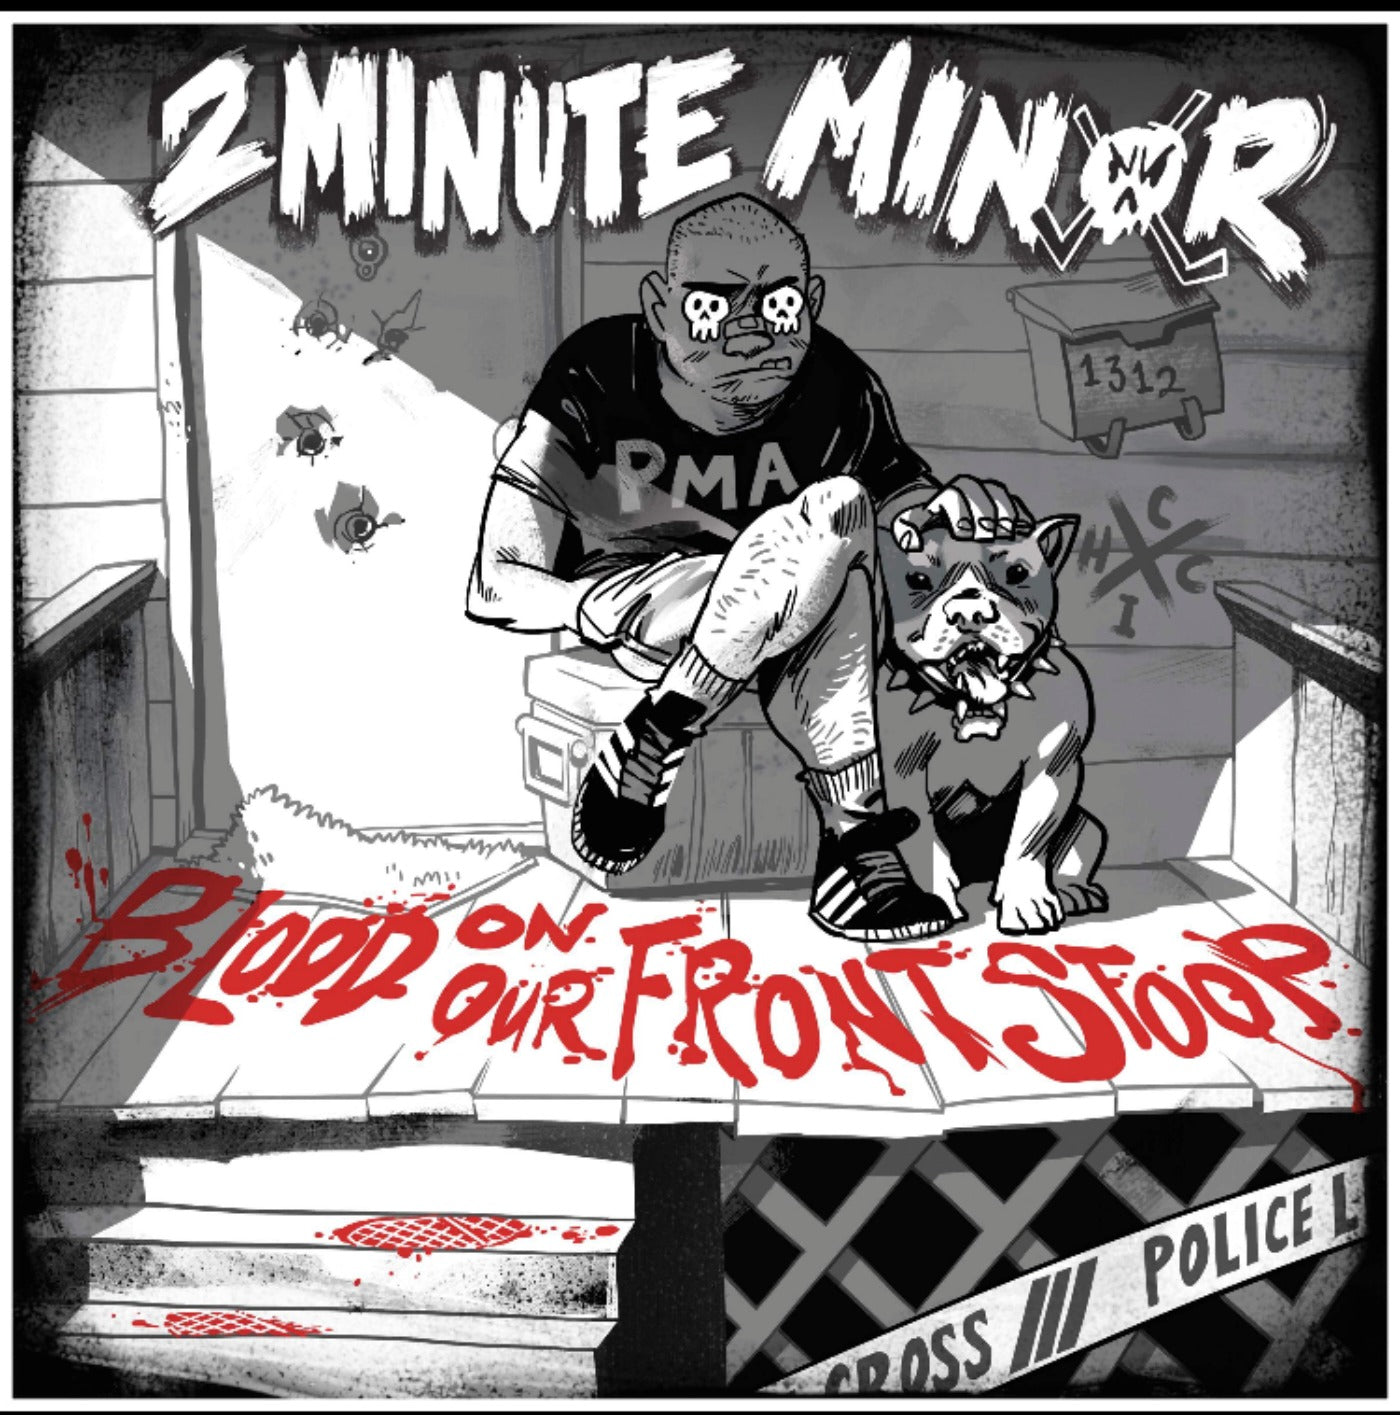 2 Minute Minor - Blood On Our Front Stoop Distro 7""